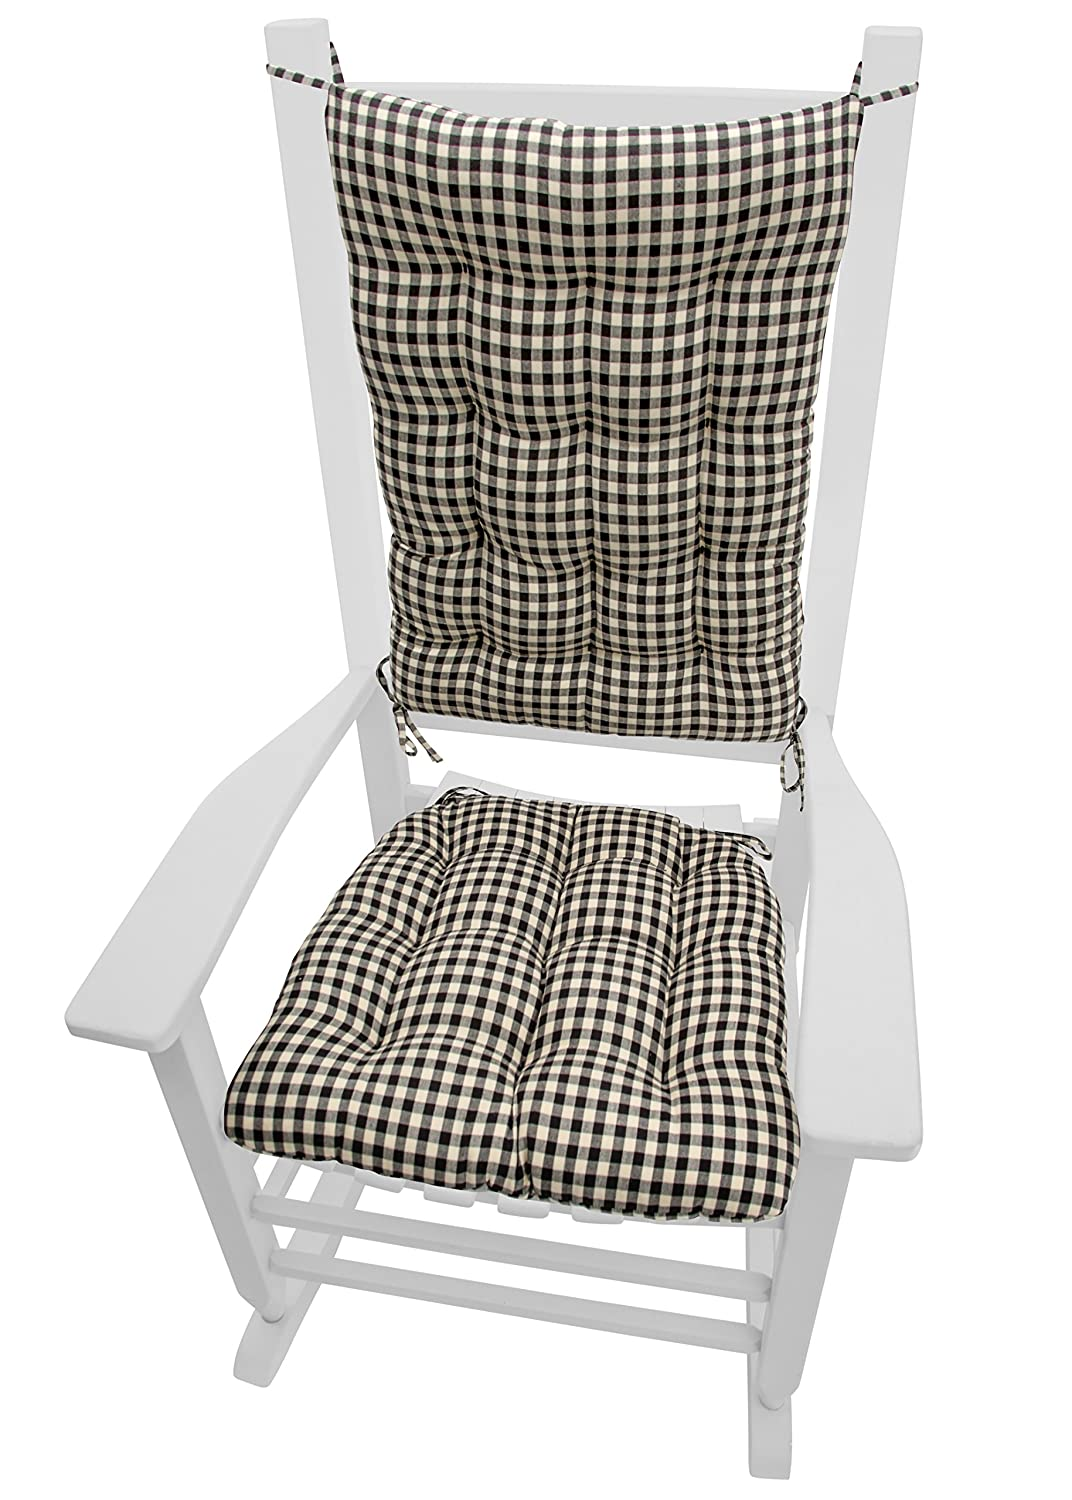 Amazon.com: Rocking Chair Cushions - Checkers Black & White 1/4 ...